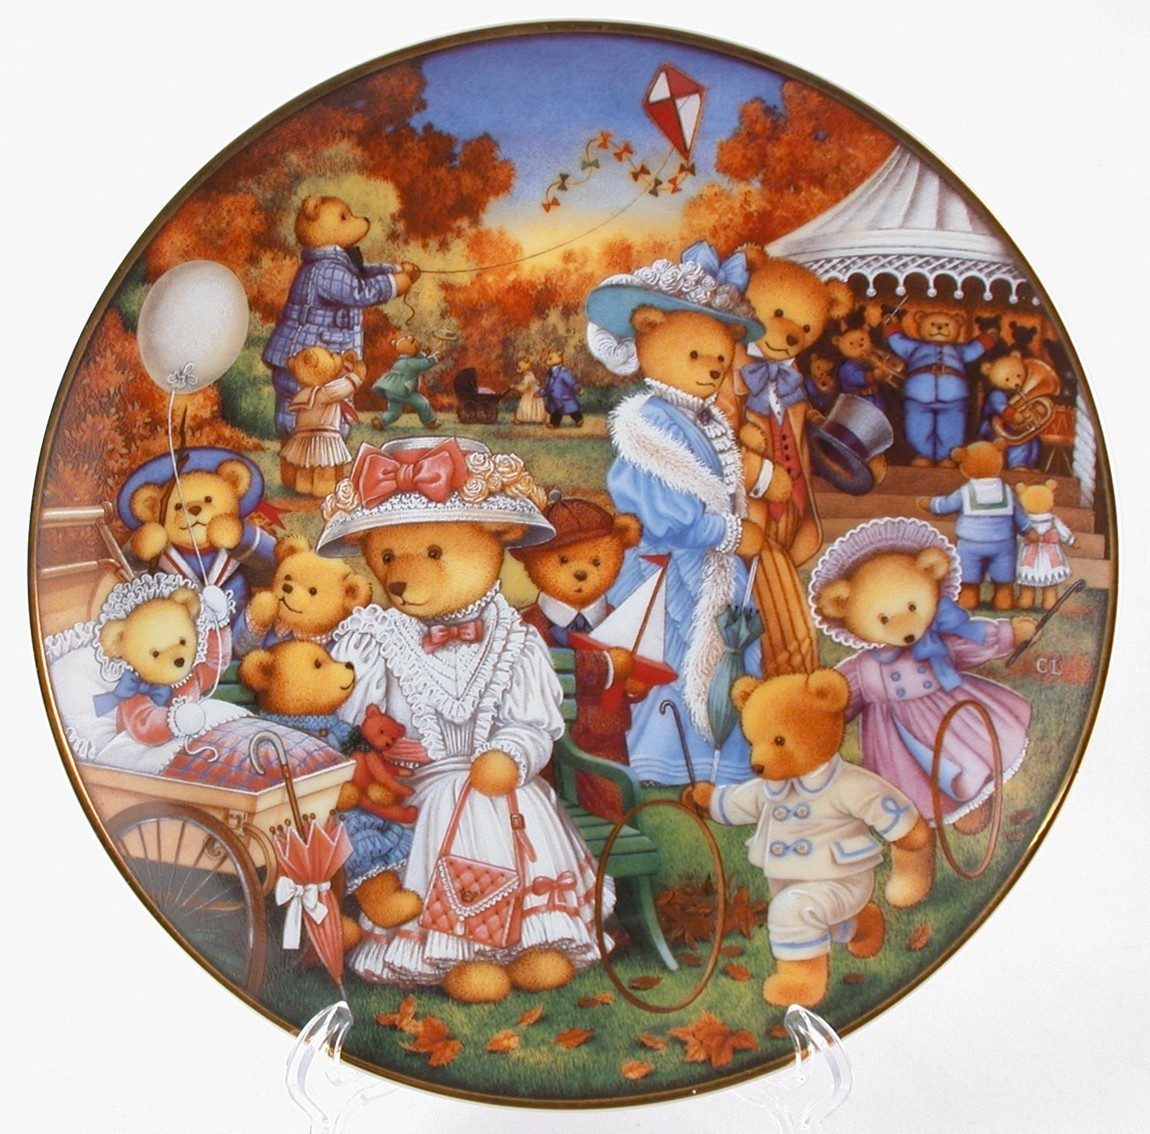 Primary image for Franklin Mint Teddy Bear Outing Limited Edition Heirloom Collection Plate N3498